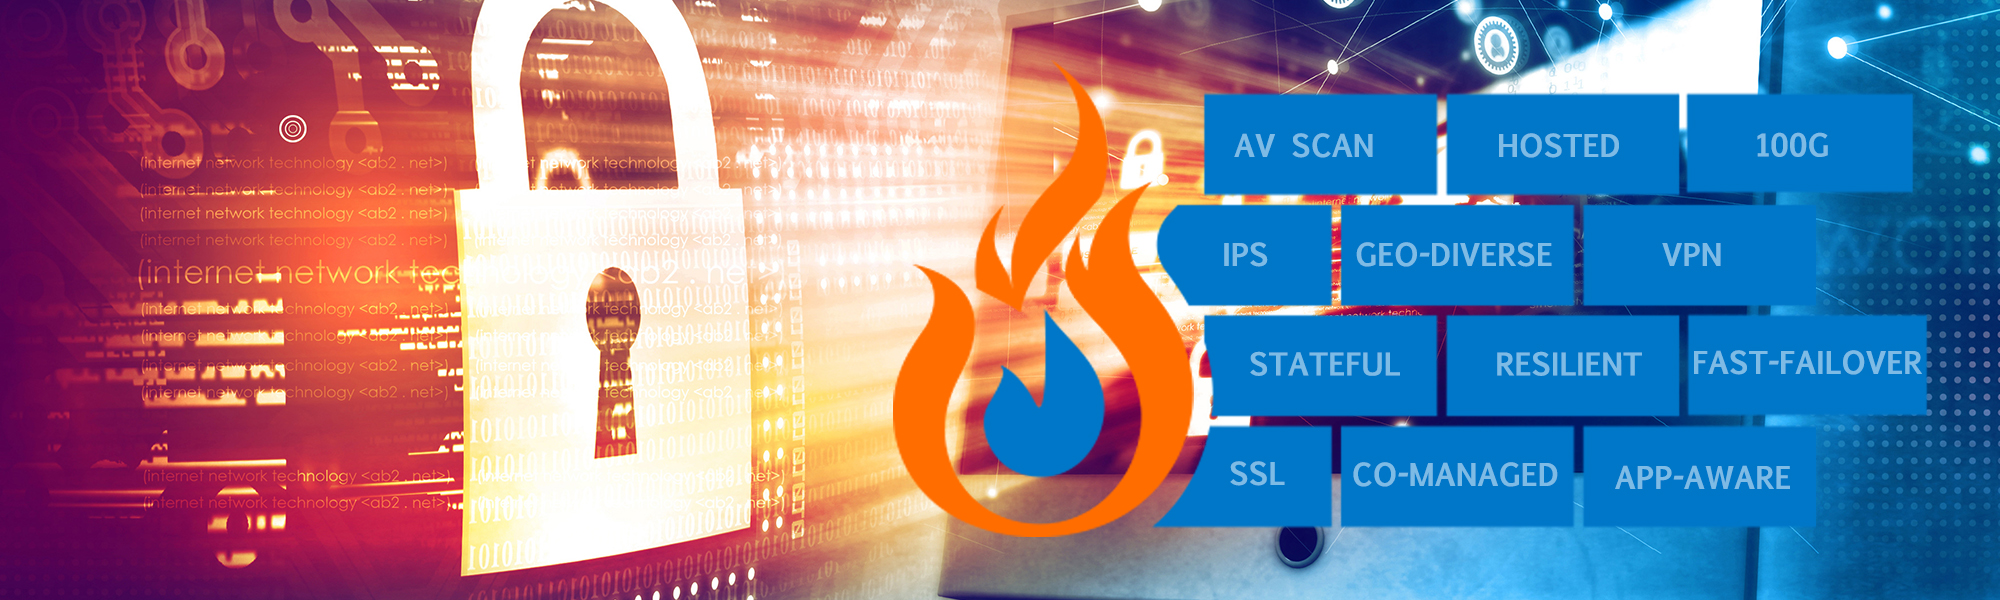 Graphic background with image of a lock, graphic of a fire next to a number of blocks that read: AV Scan, Hosted, 100G, IPS, Geo-diverse, VPN, Stateful, Resilient, Fast-Failover, SSL, Co-managed, App-aware